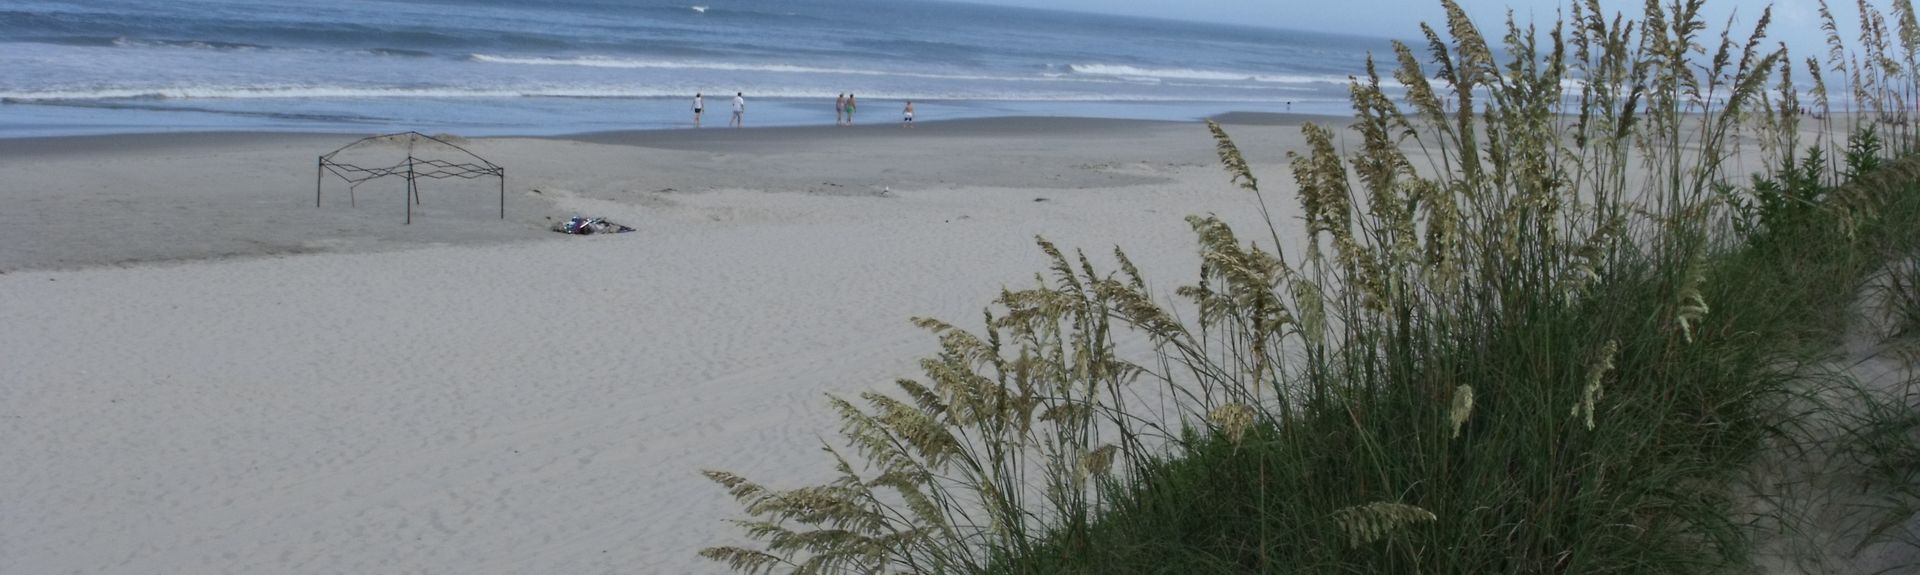 Praia de Currituck, Corolla, Carolina do Norte, Estados Unidos